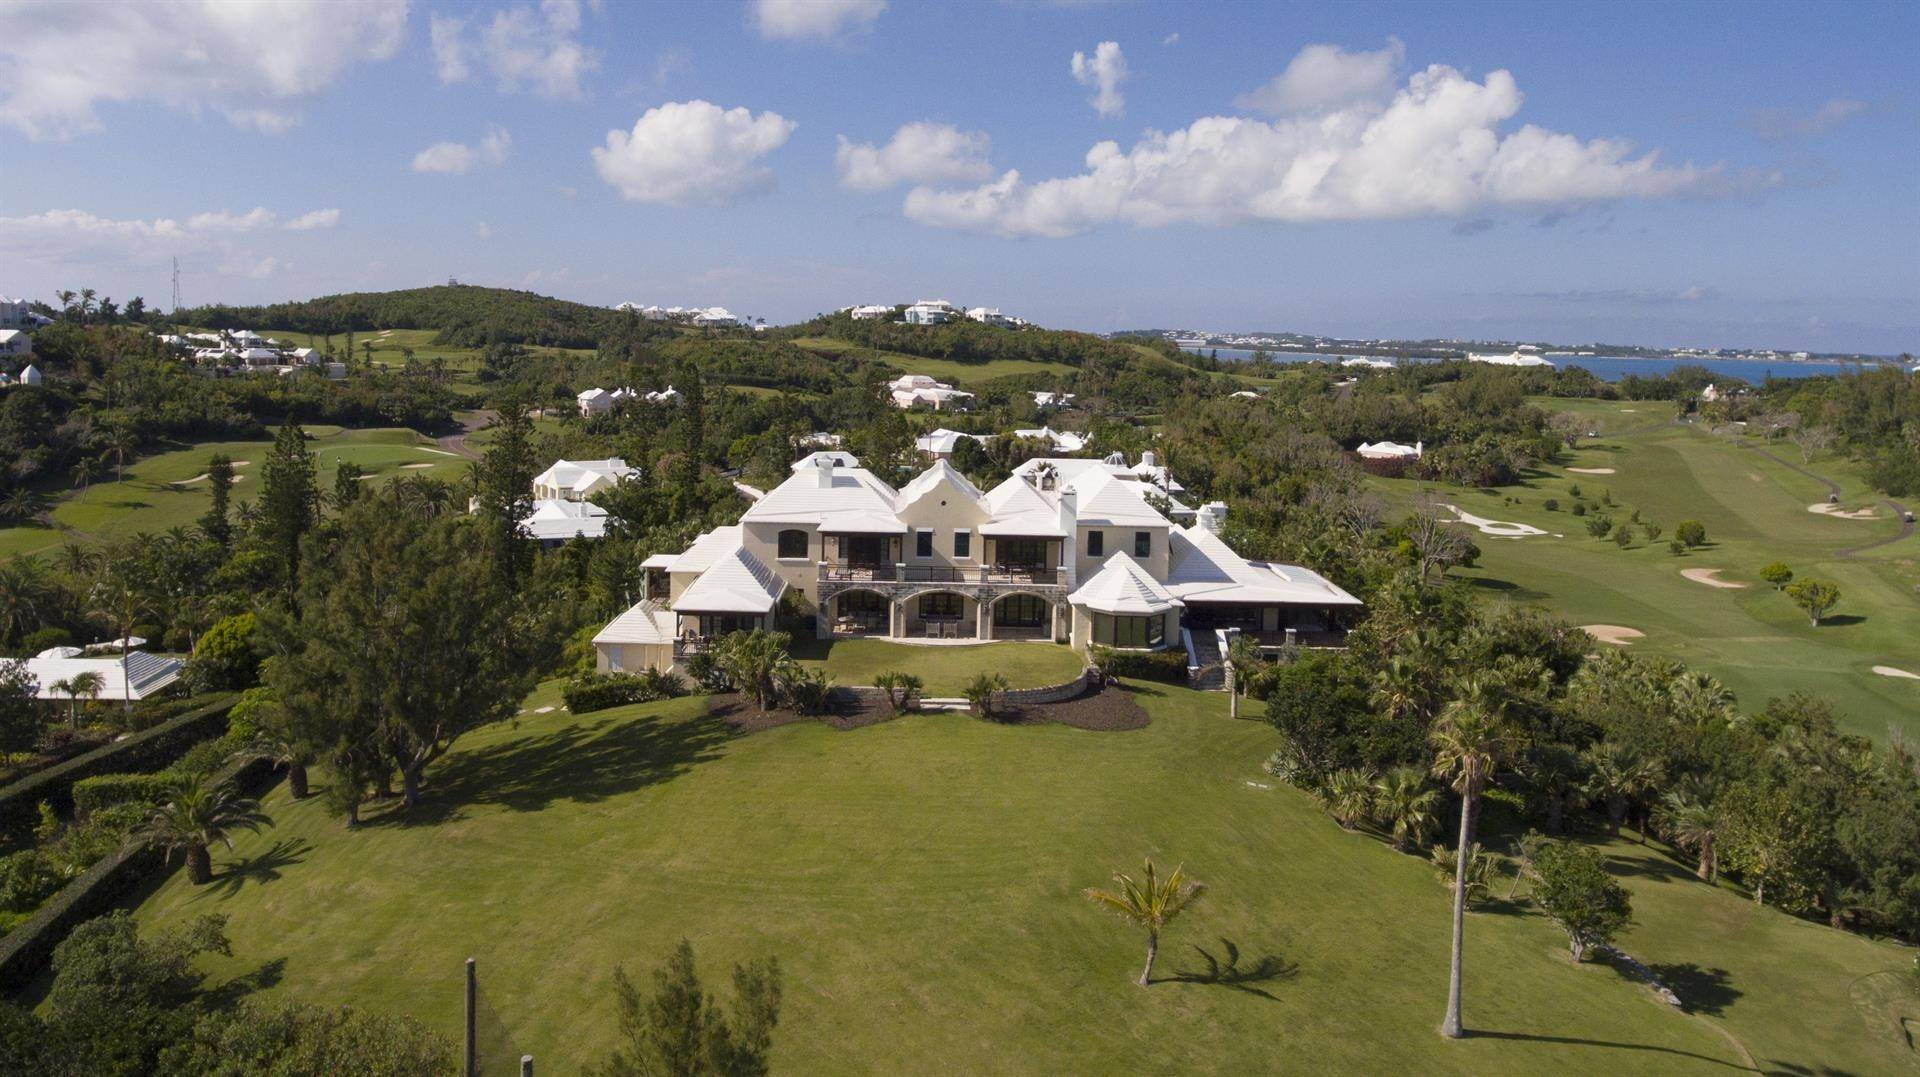 2. Địa ốc vì Bán tại Roughill In Tucker's Town Roughill In Tucker's Town, 6 Long Lane,Bermuda – Sinclair Realty